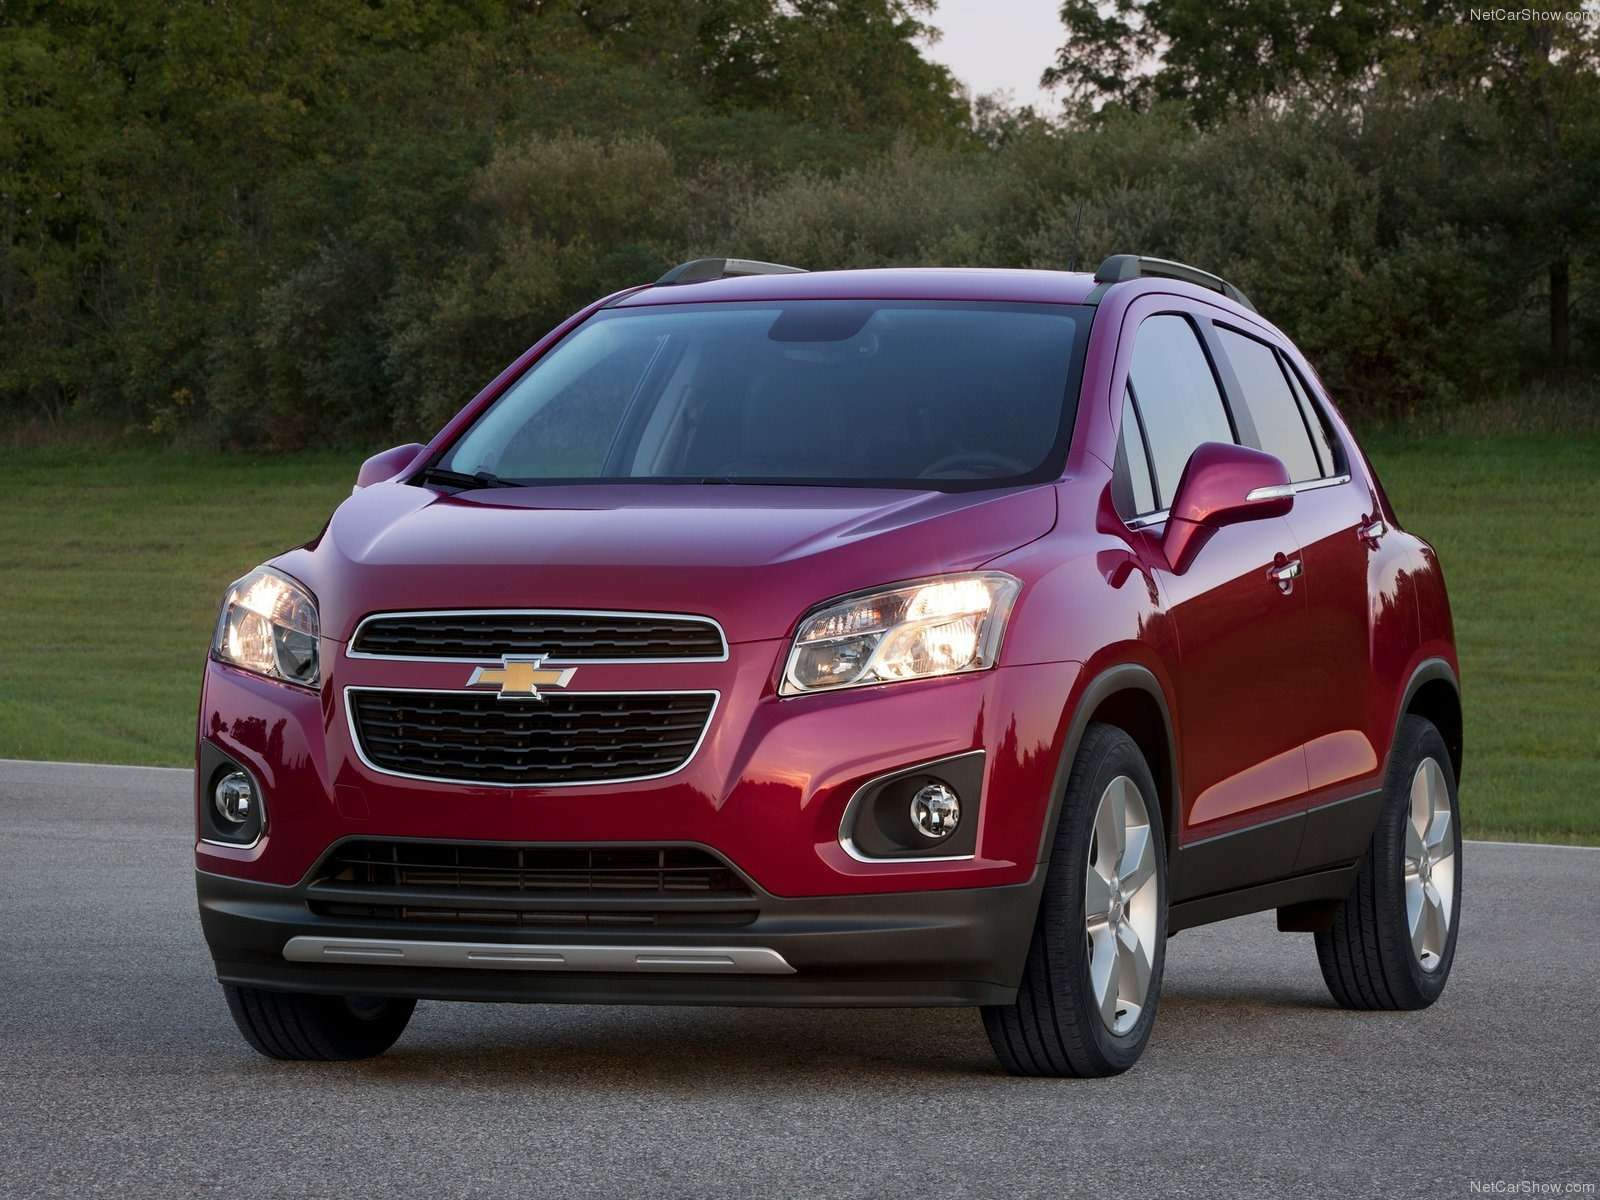 Chevrolet-Trax_2014_1600x1200_wallpaper_01